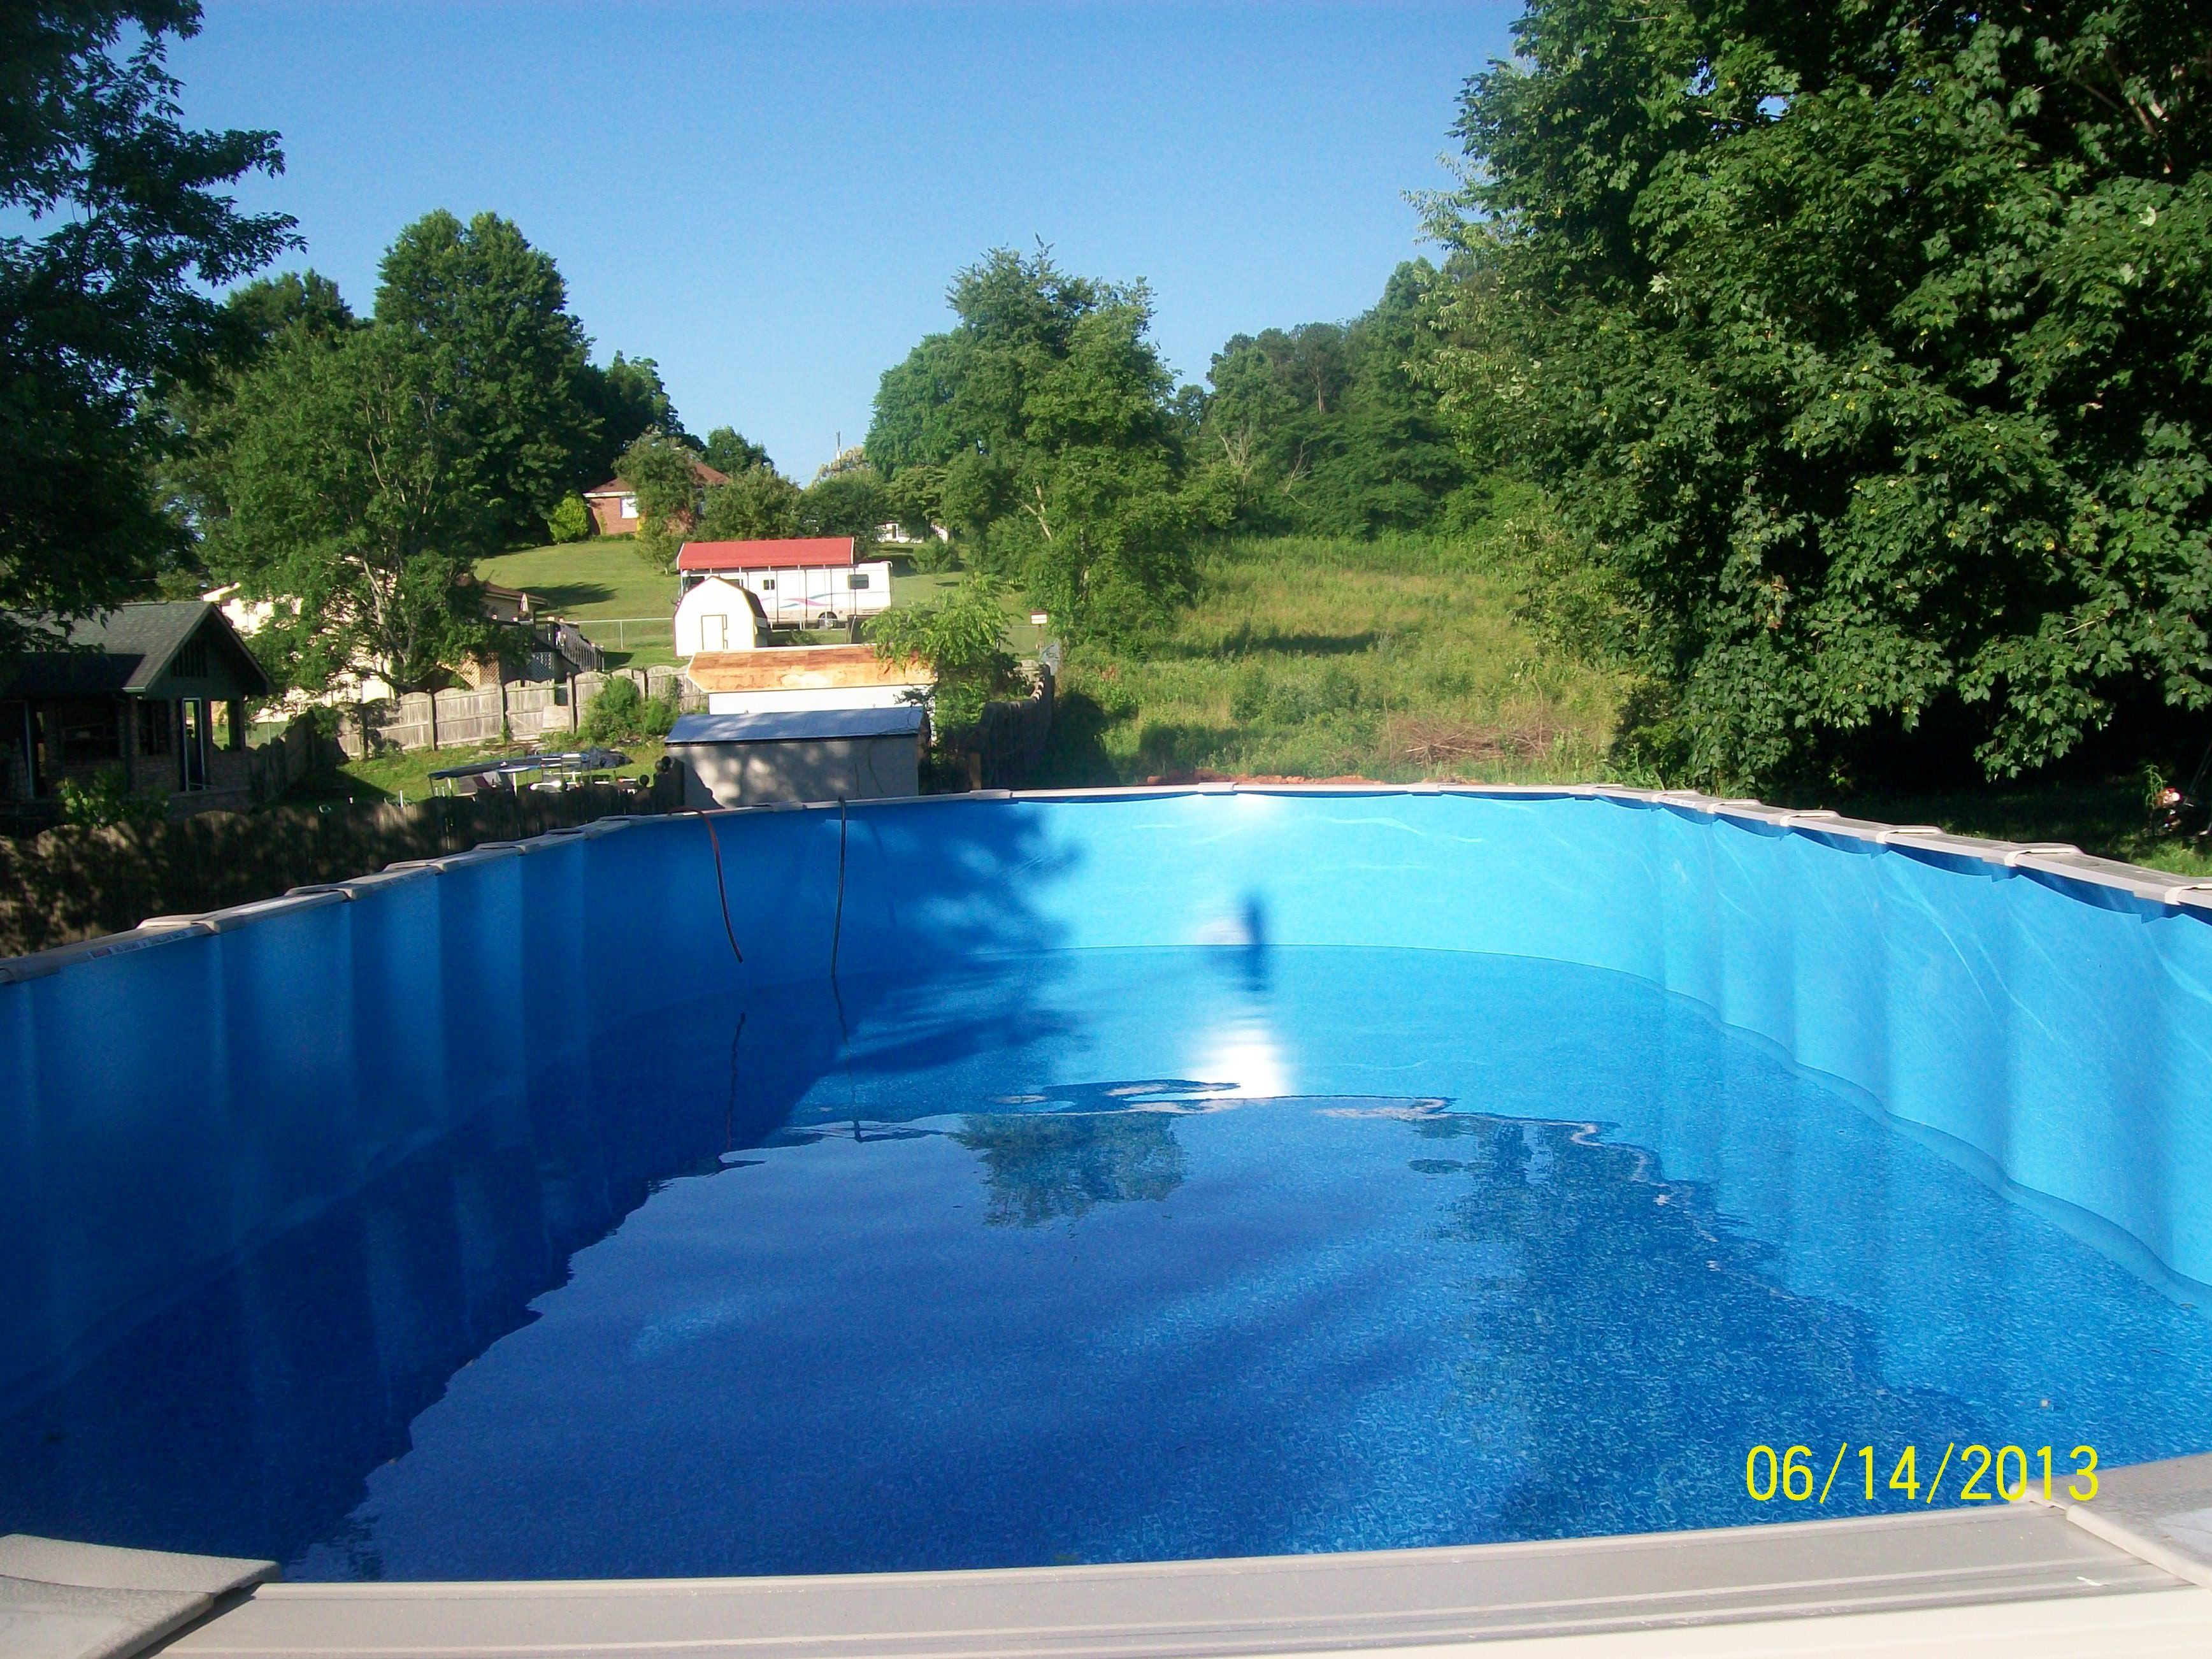 18 X 44 Oval Above Ground Pool Knoxville Tn By Poolman Concrete Doctor In Ground Pools Oval Above Ground Pools Pool